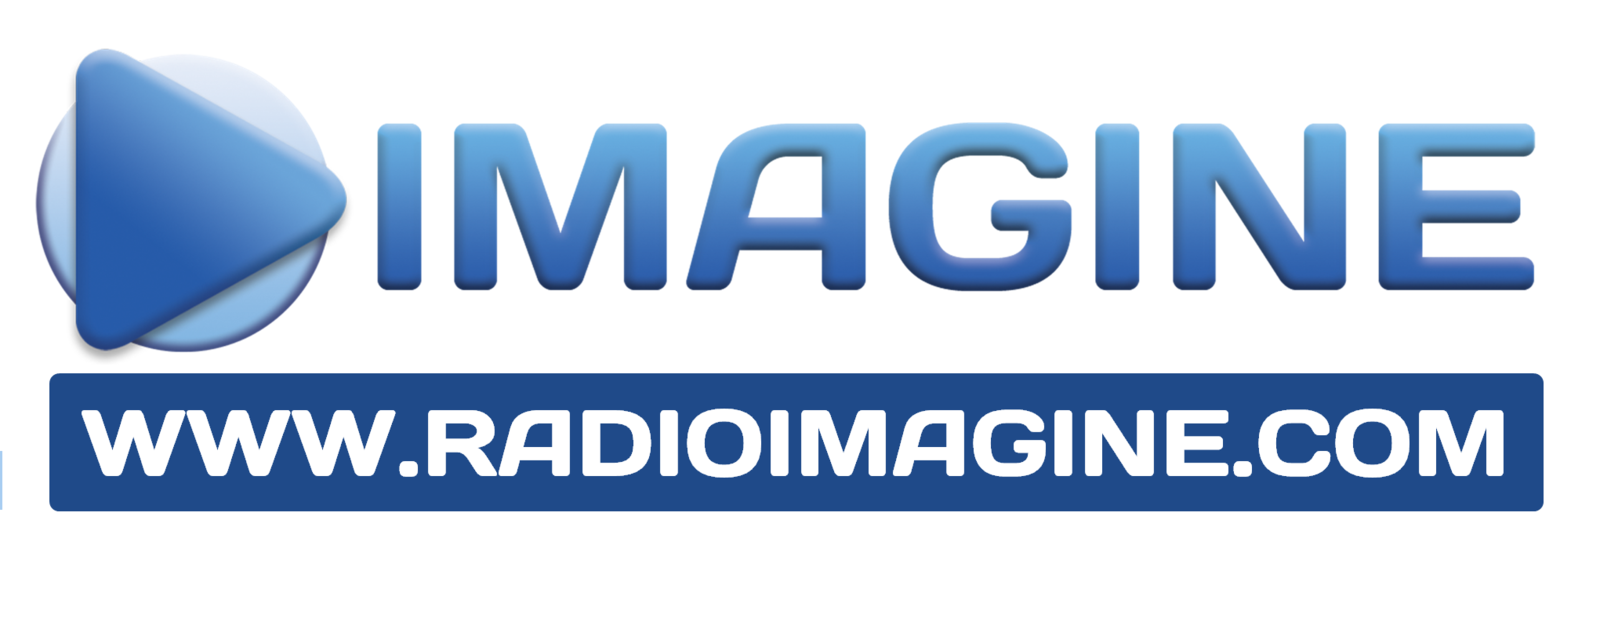 Radio Imagine - Sports Hautes-Alpes : Dixieme Numero